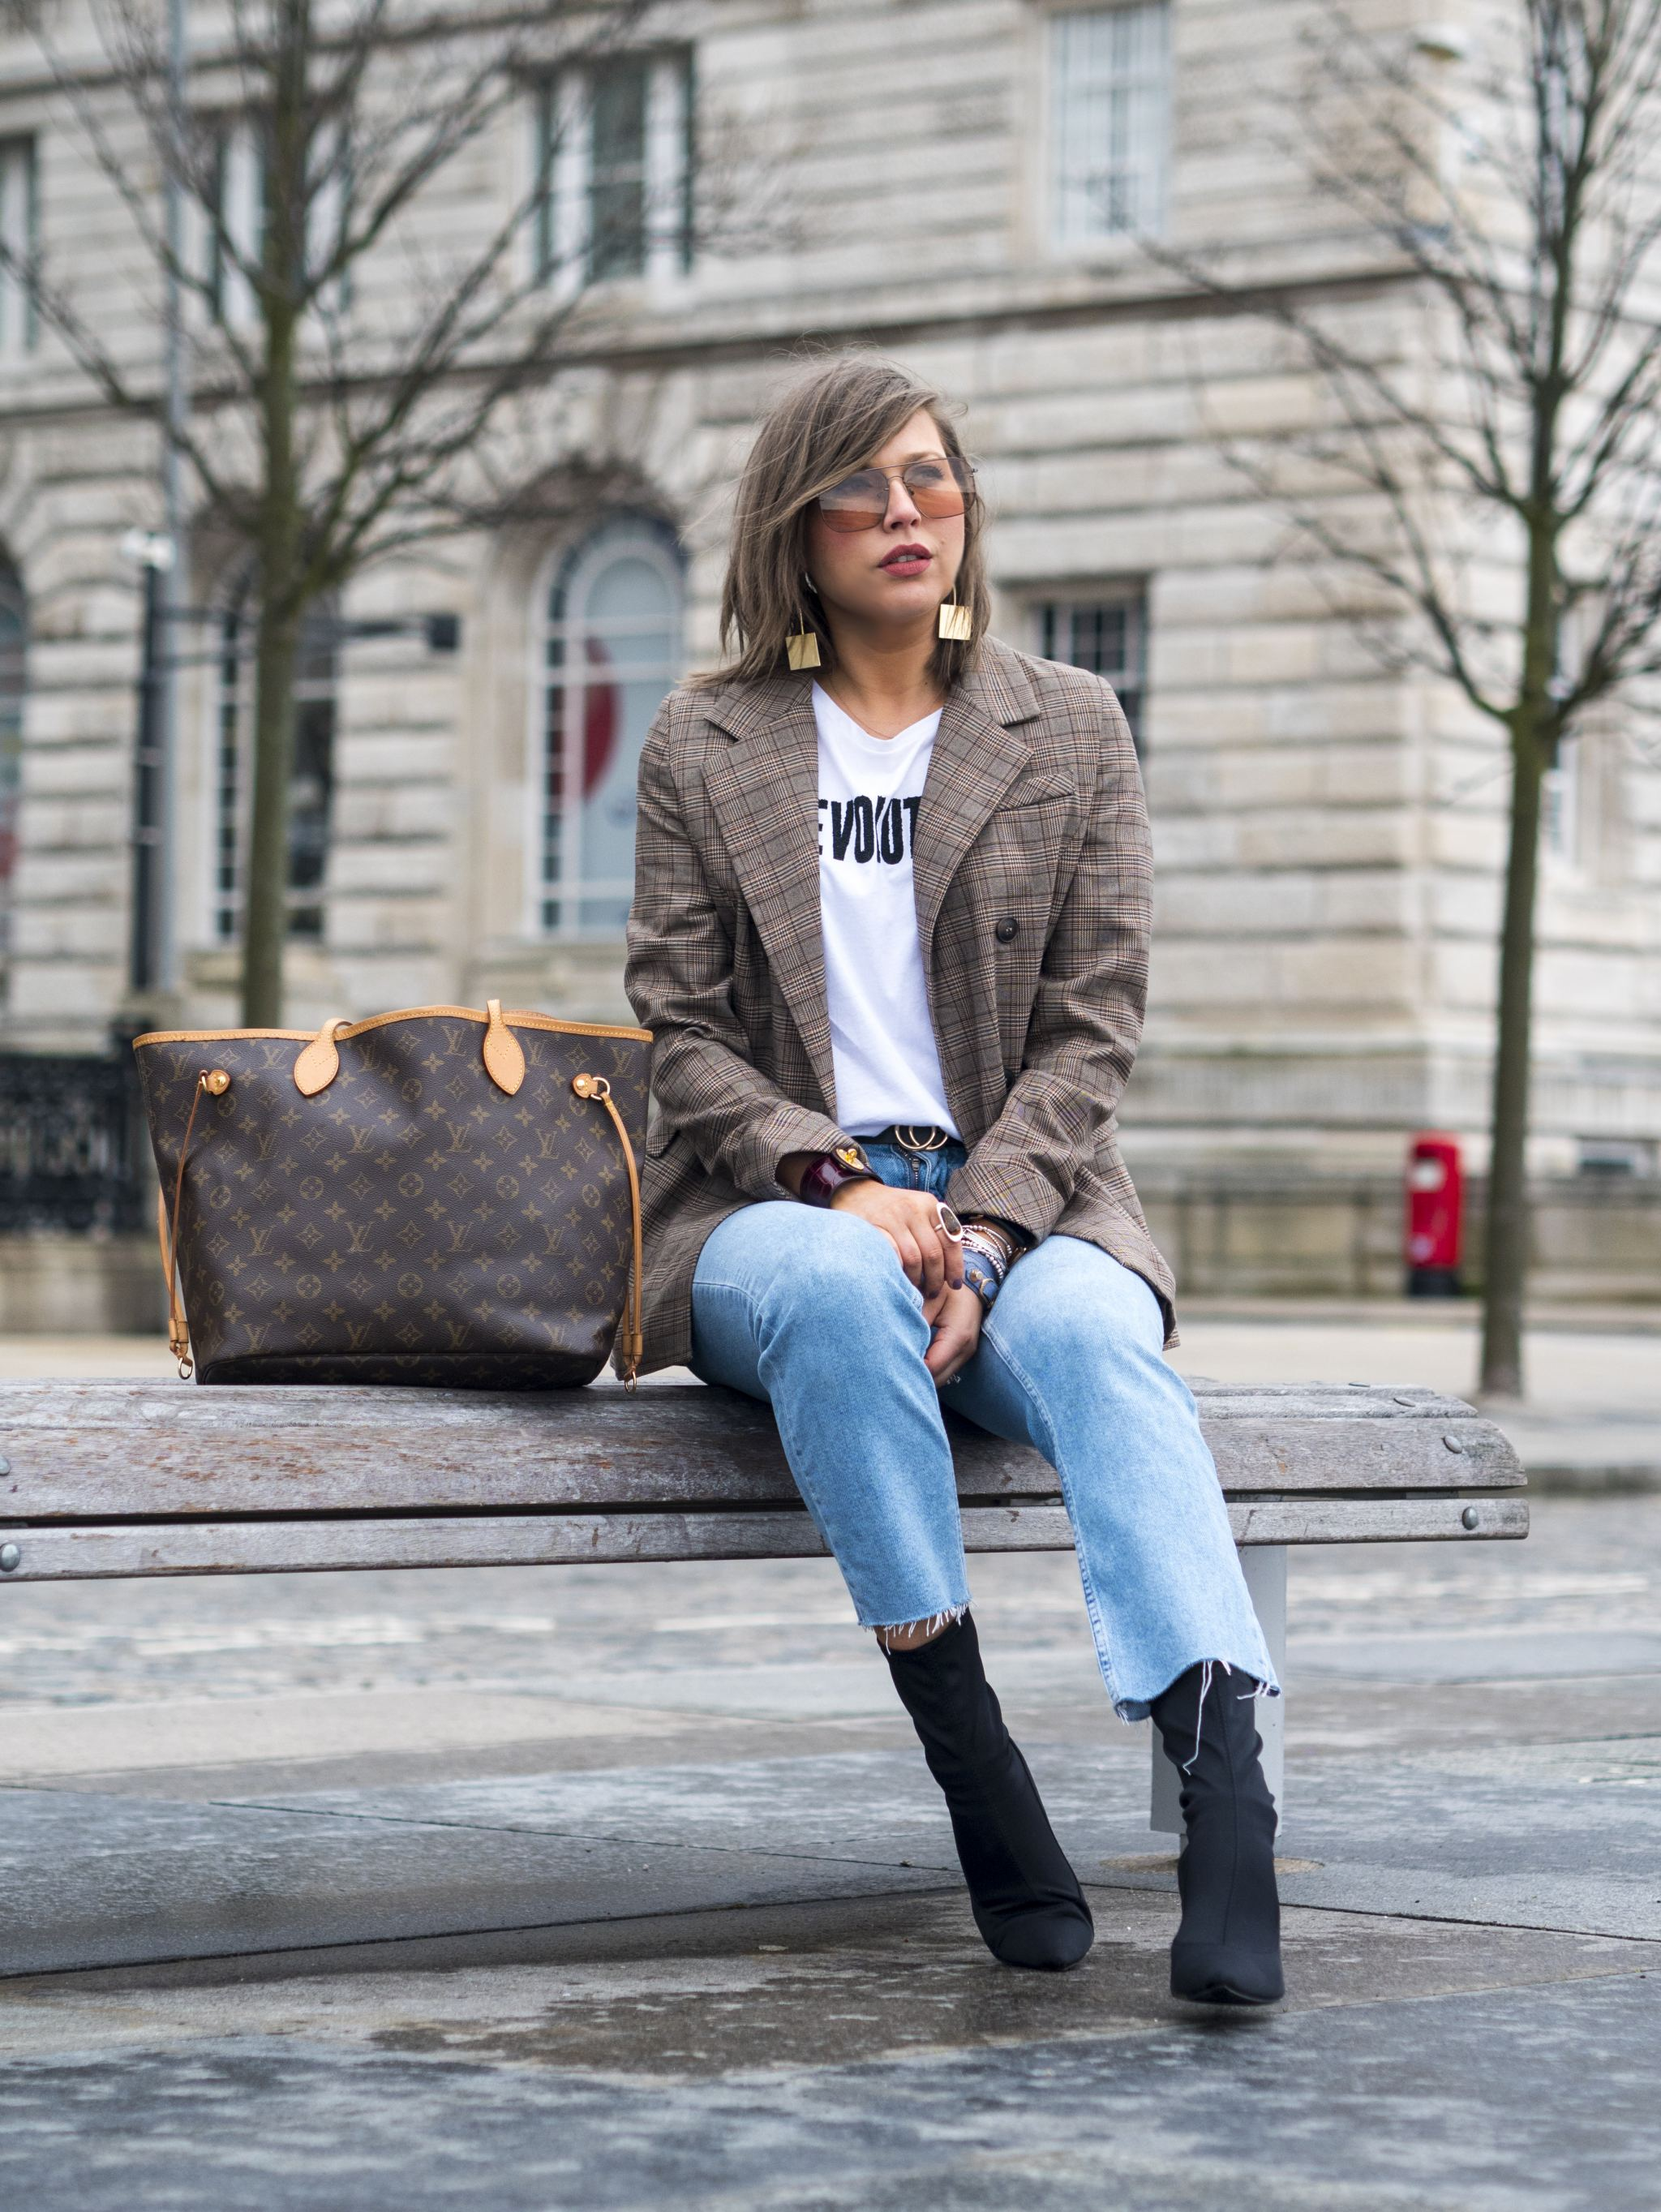 manchester fashion blogger , revolution t shirt, mango , manchester fashion revolution, check blazer, Louis Vuitton, topshop straight jeans , manchester